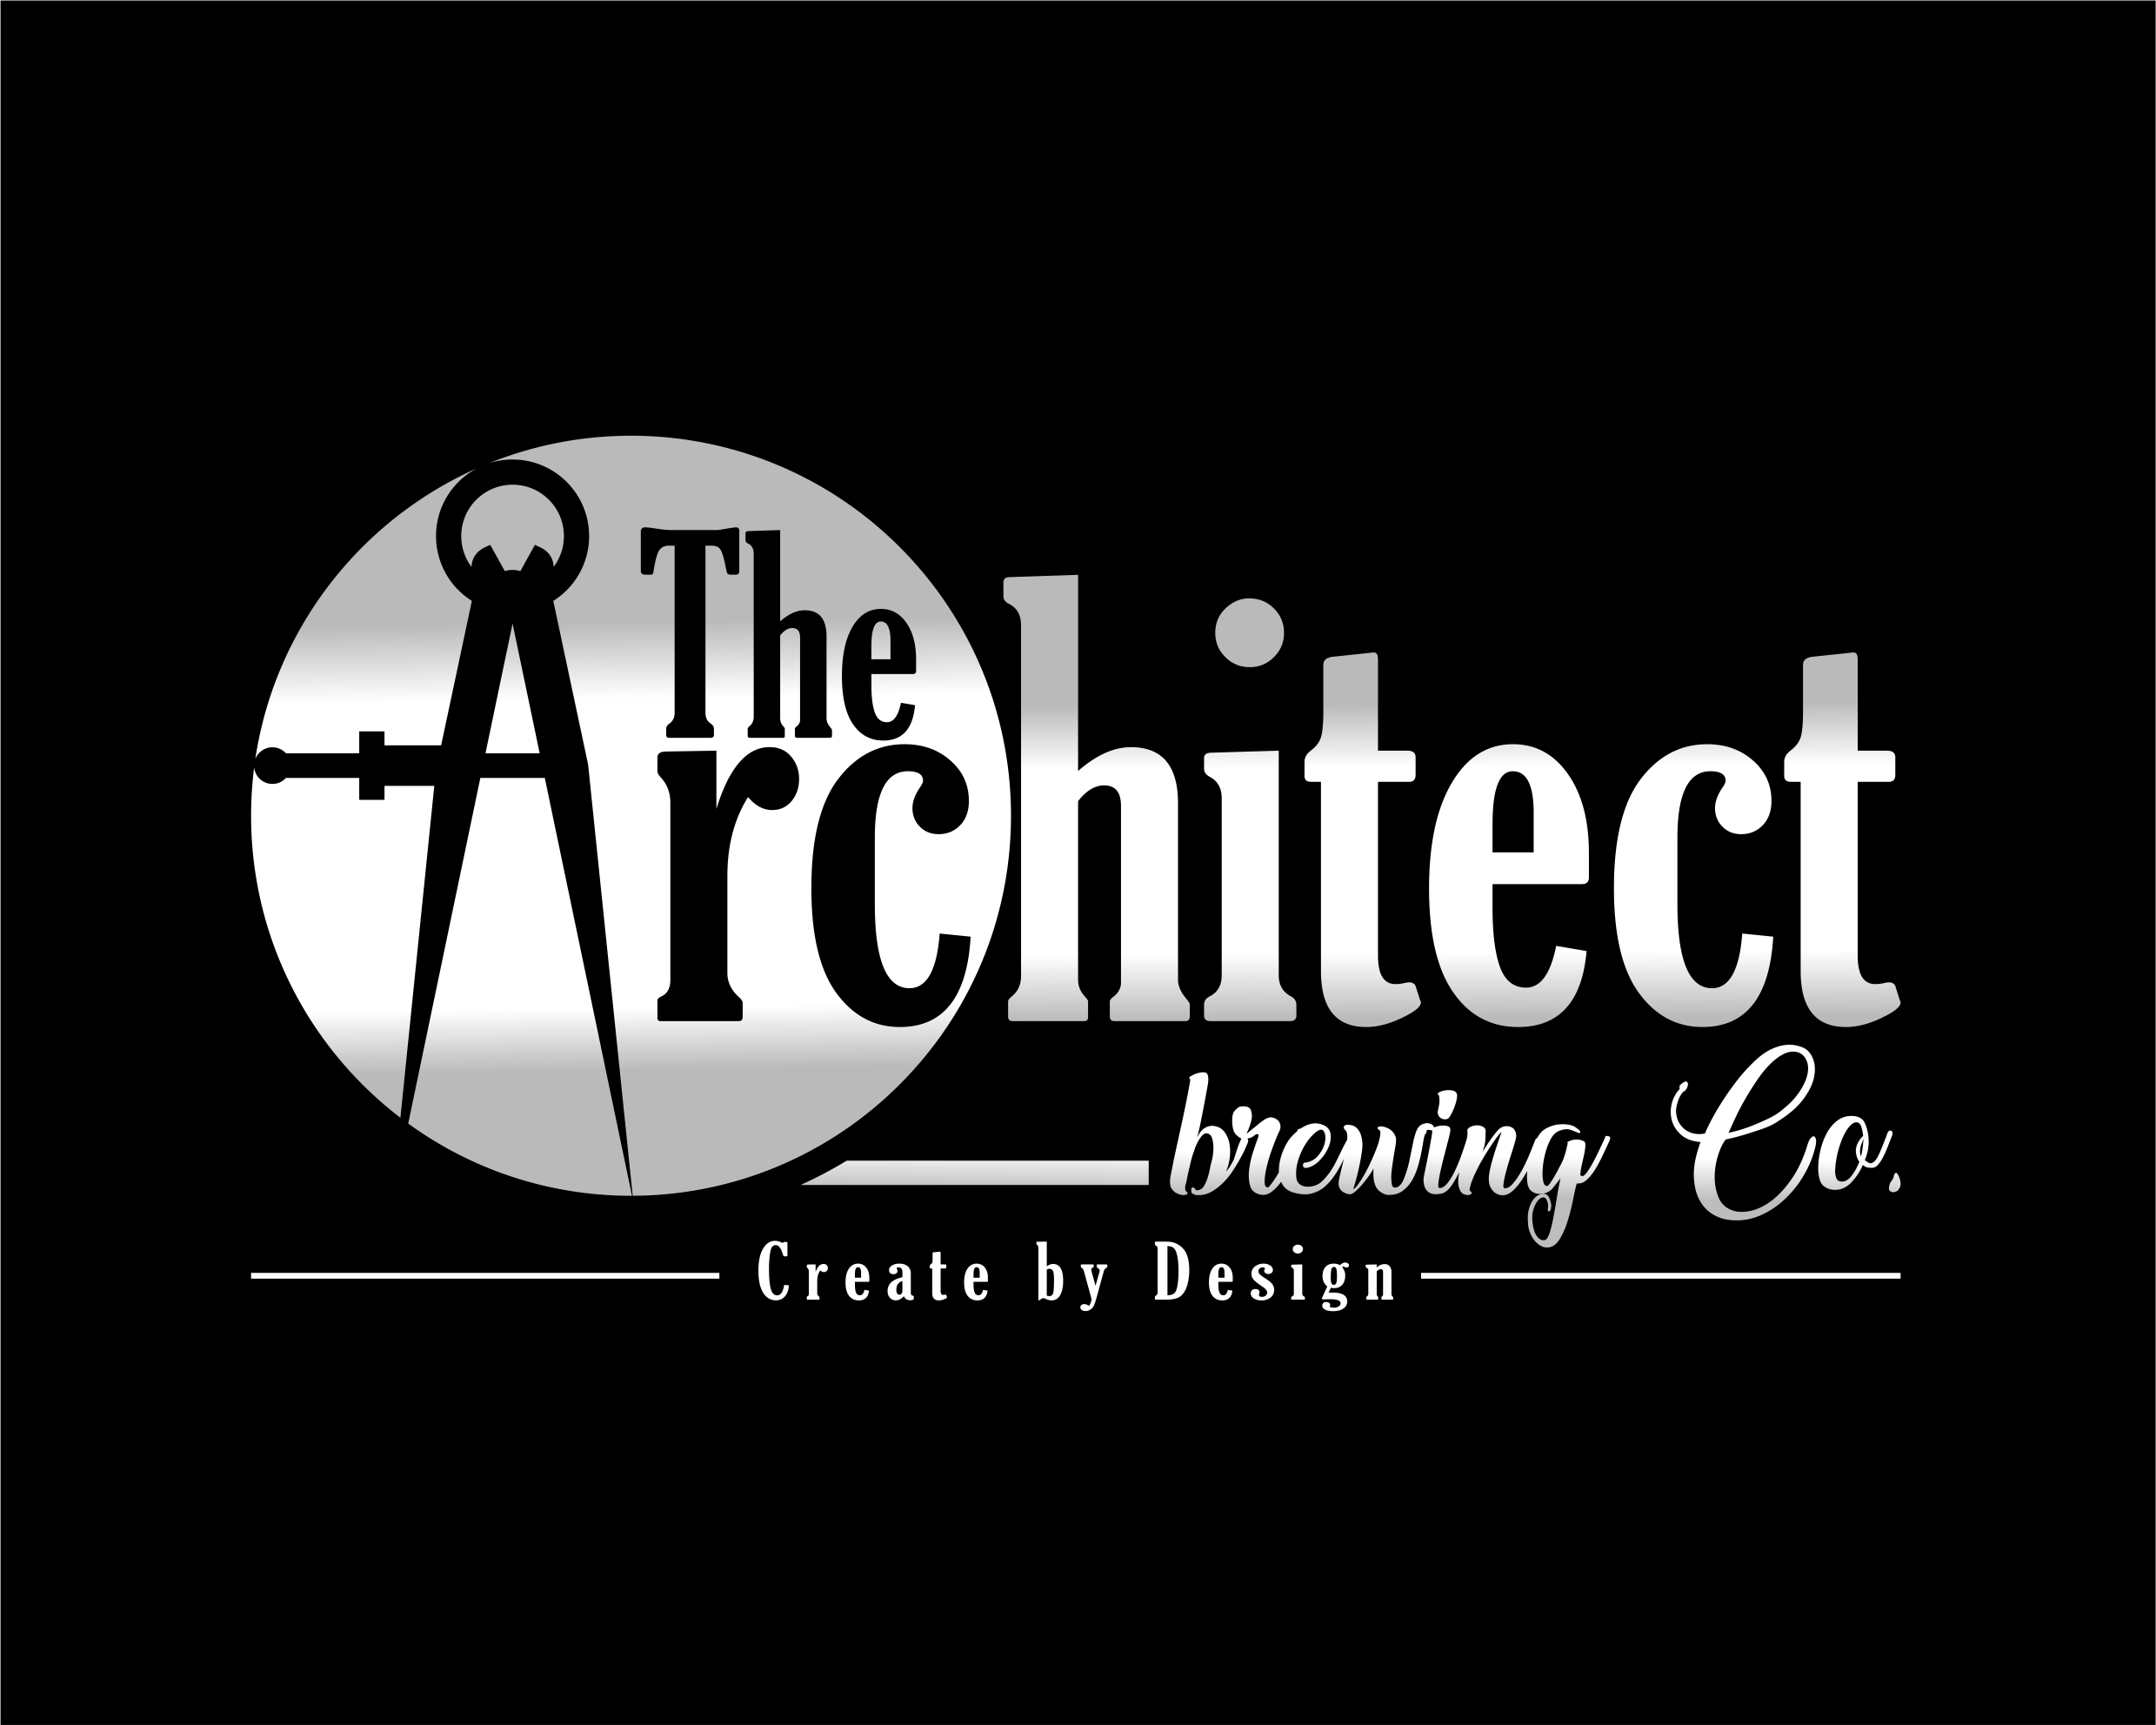 Logo Design by Net Bih - Entry No. 21 in the Logo Design Contest Captivating Logo Design for The Architect Brewing Co..